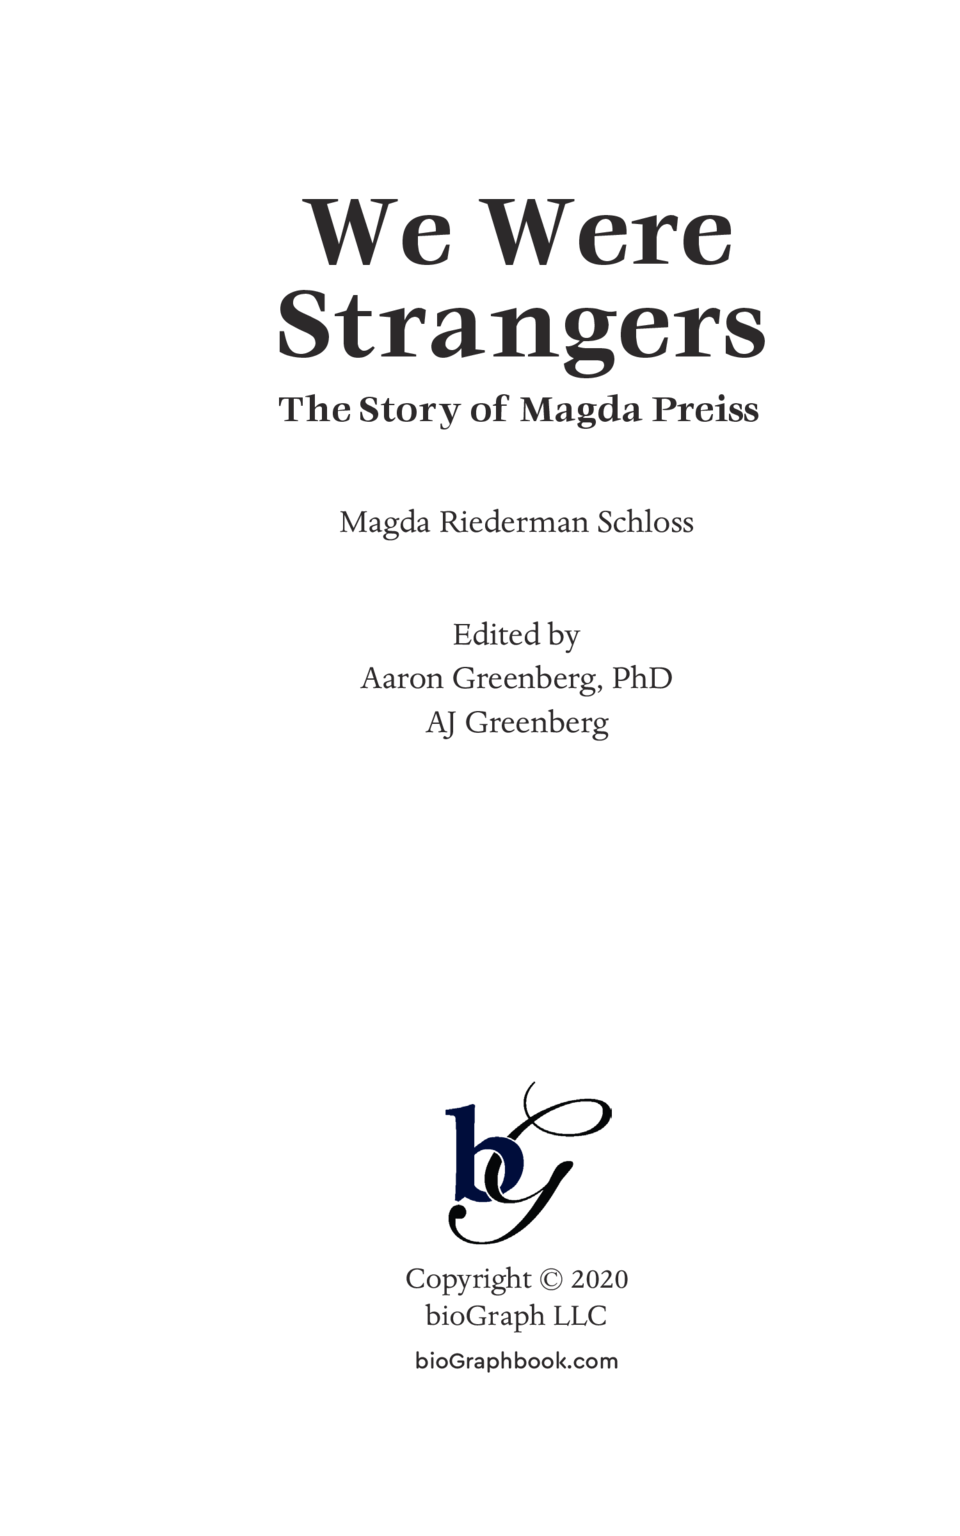 We Were Strangers The Story of Magda Preiss  Magda Riederman Schloss Edited by Aaron Greenberg, PhD AJ Greenberg  Cop...